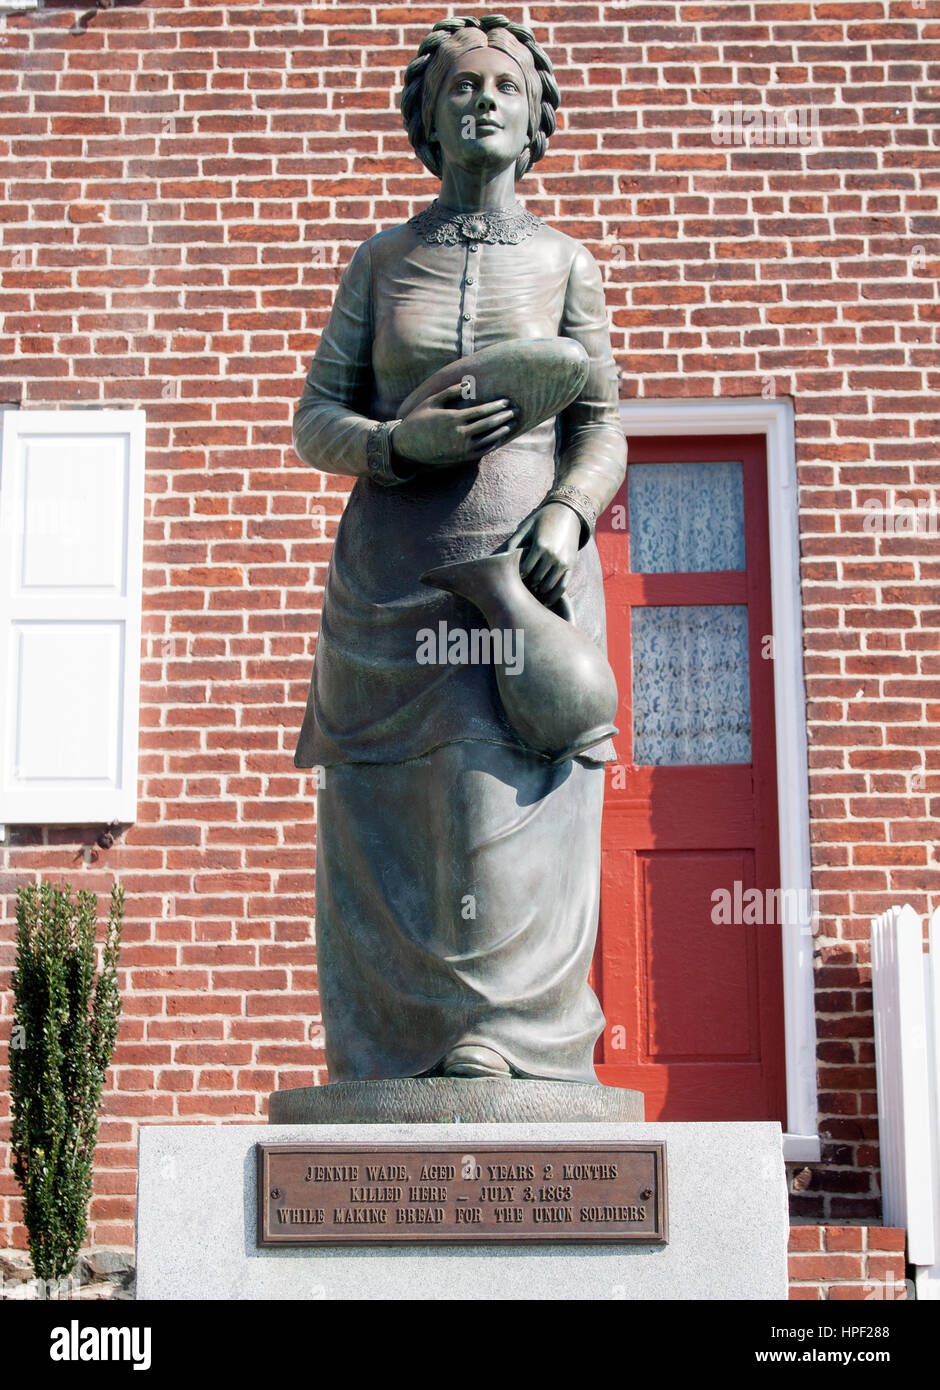 Jennie Wade the Bread Martyr was the only civilian killed during the Civil War's Battle of Gettysburg in Pennsylvania - Stock Image